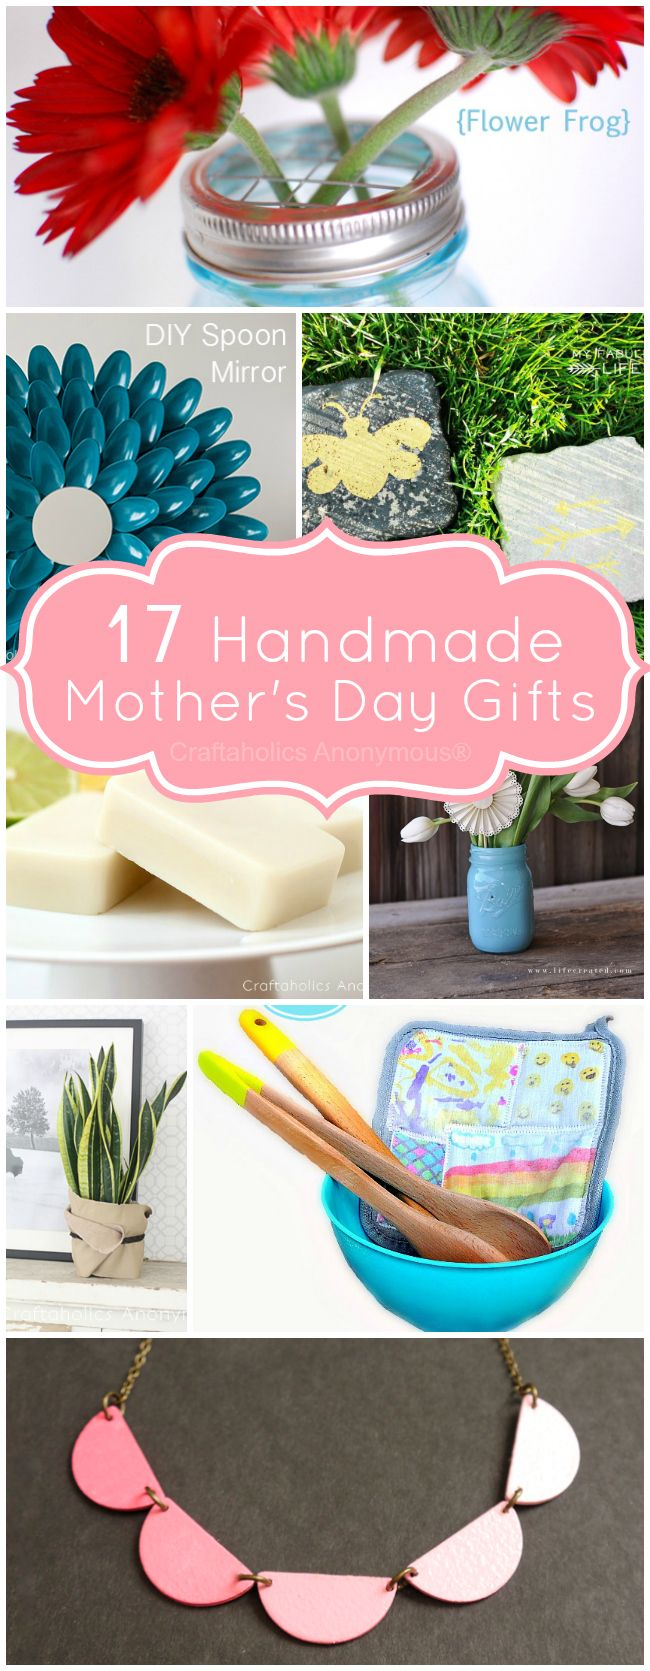 17 Handmade Mother's Day Gifts. Loads of easy gift ideas! #handmade #mothers_day #gifts